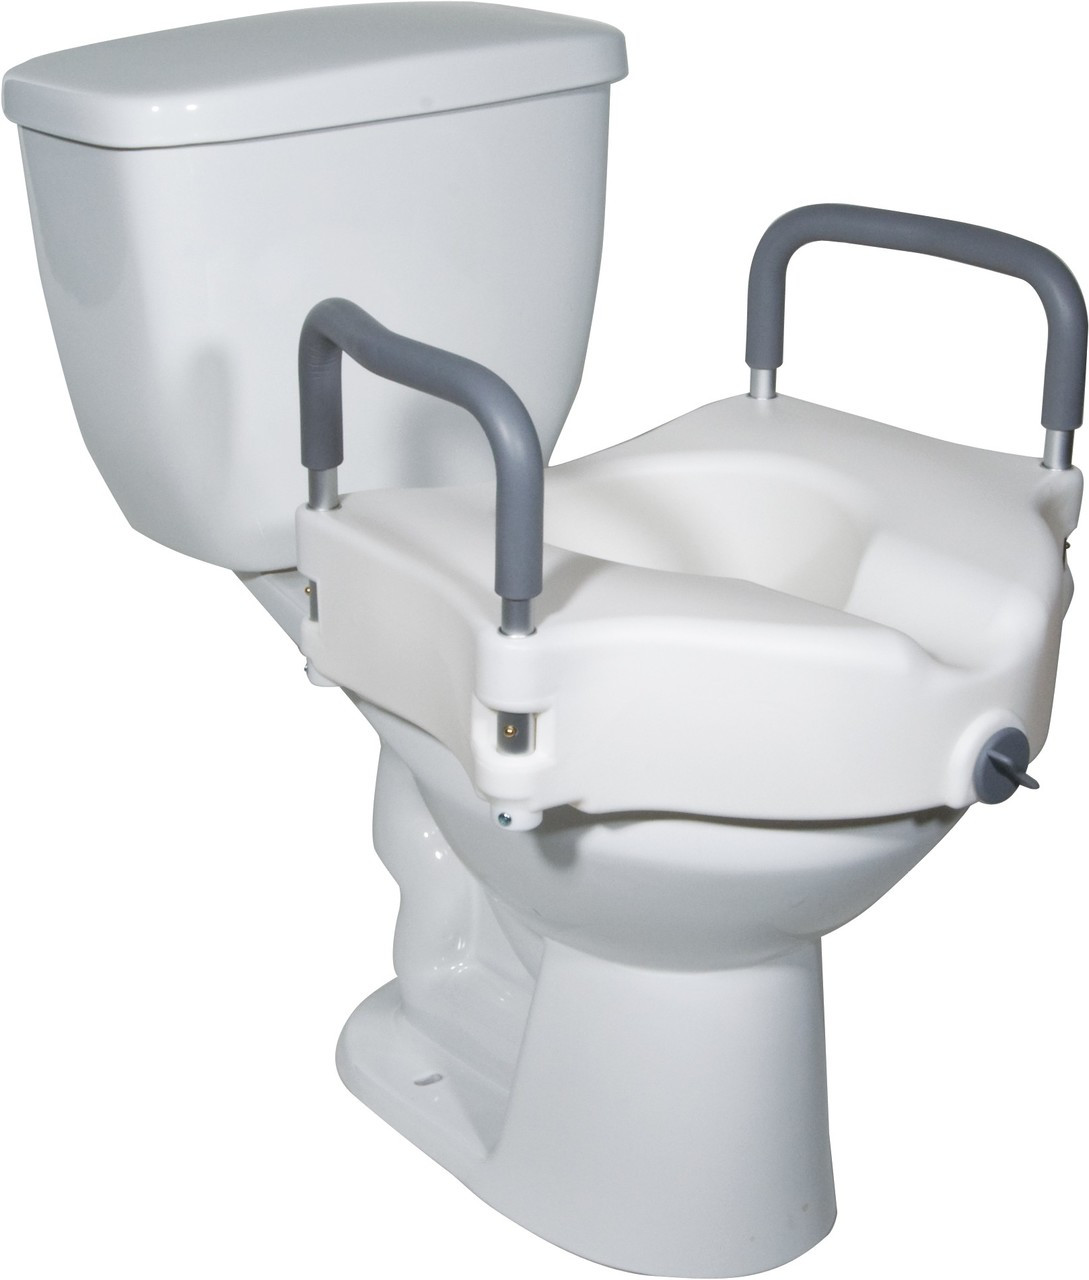 Fantastic 2 In 1 Locking Raised Toilet Seat With Tool Free Removable Arms Dailytribune Chair Design For Home Dailytribuneorg